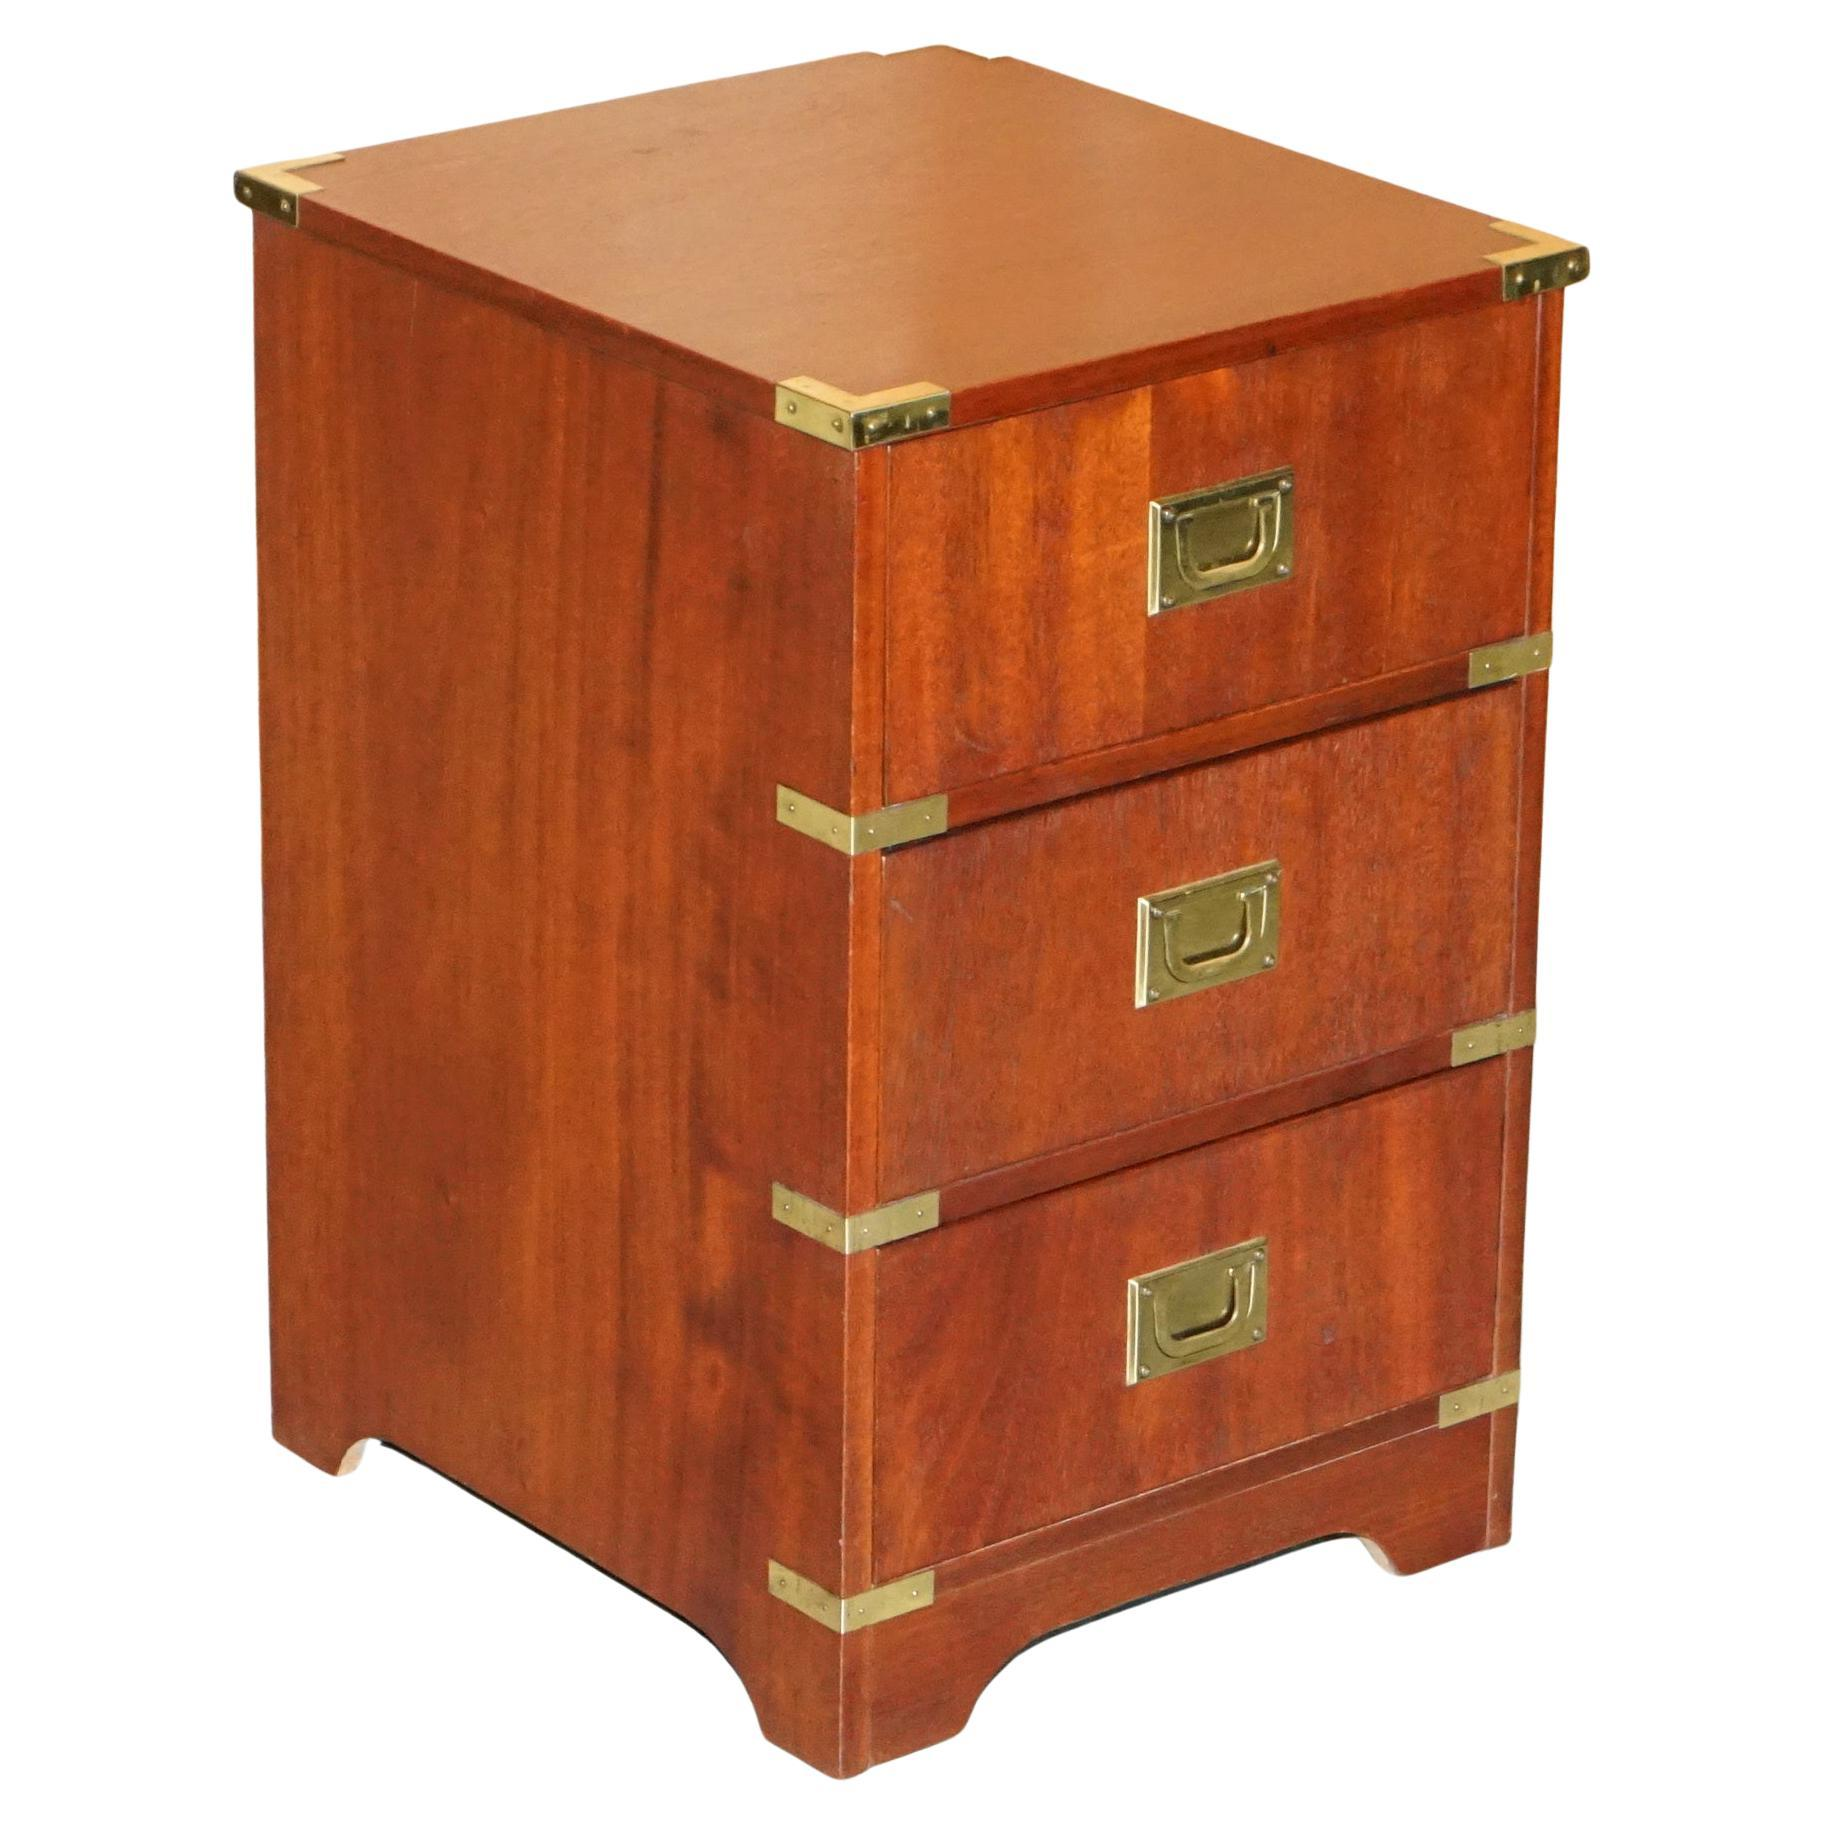 Brass Trim Military Campaign Side Table Size Small Chest of Drawers Bedside Lamp